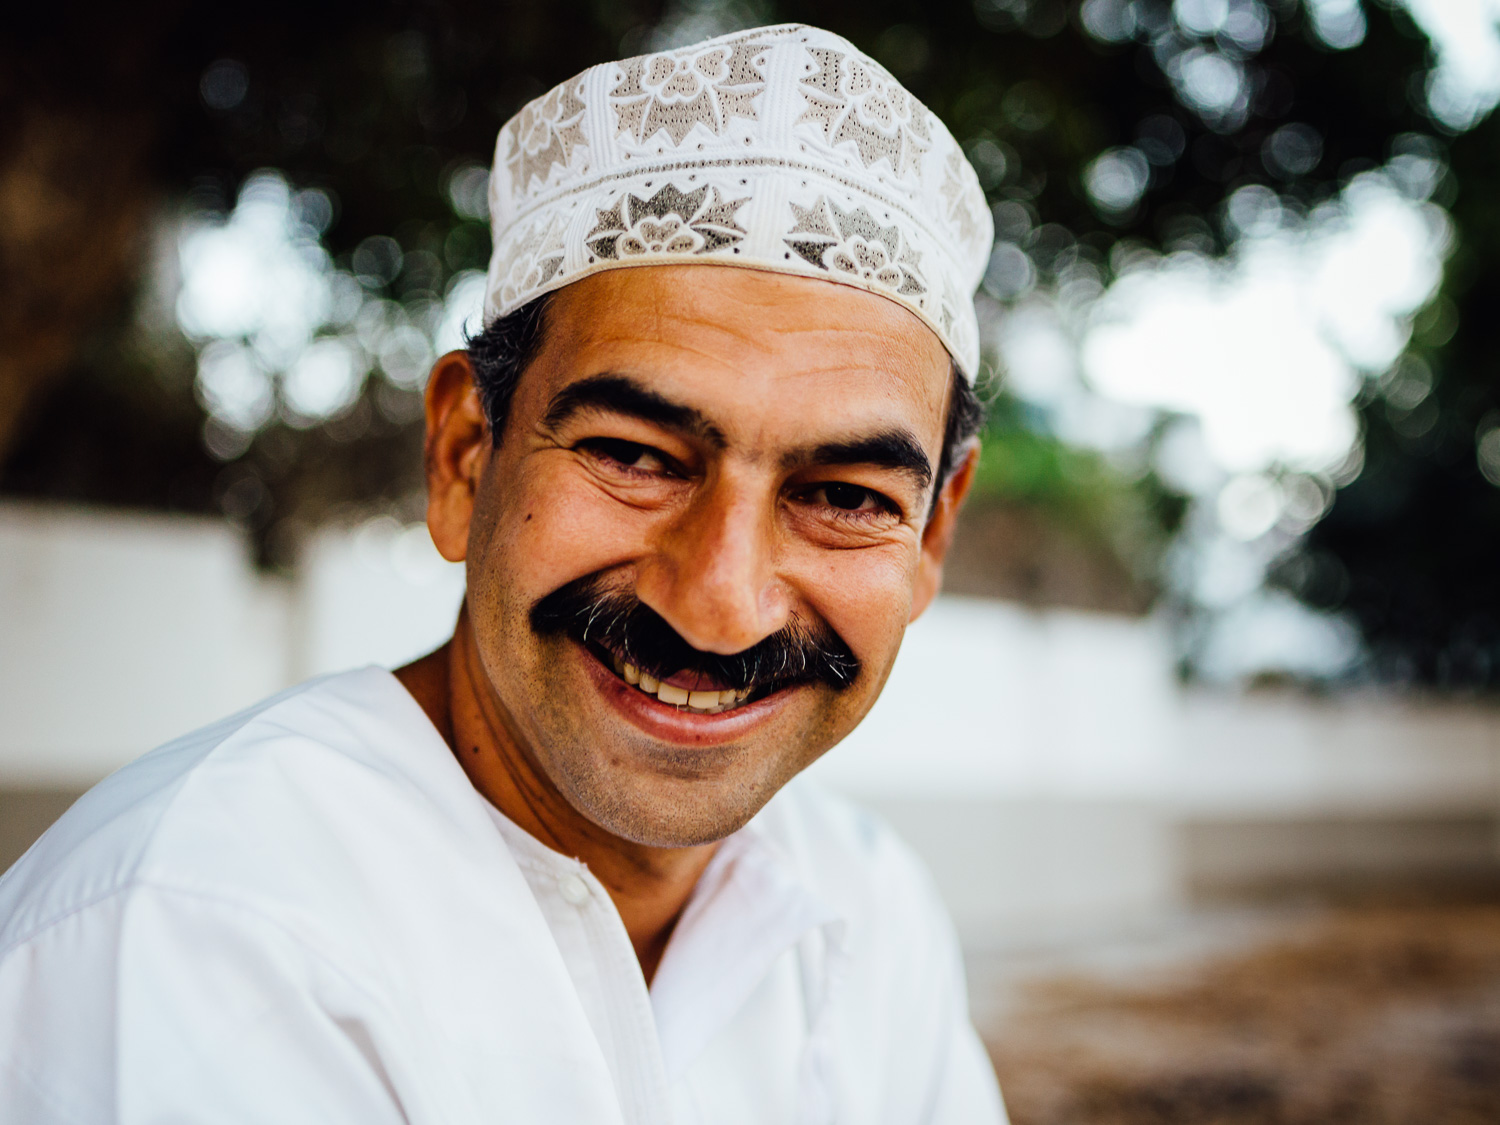 I met Mohammed at the beach. Our interaction was brief, and superficial. But somehow, for some reason, he gave me a full-faced genuine smile. I'm glad I captured it.